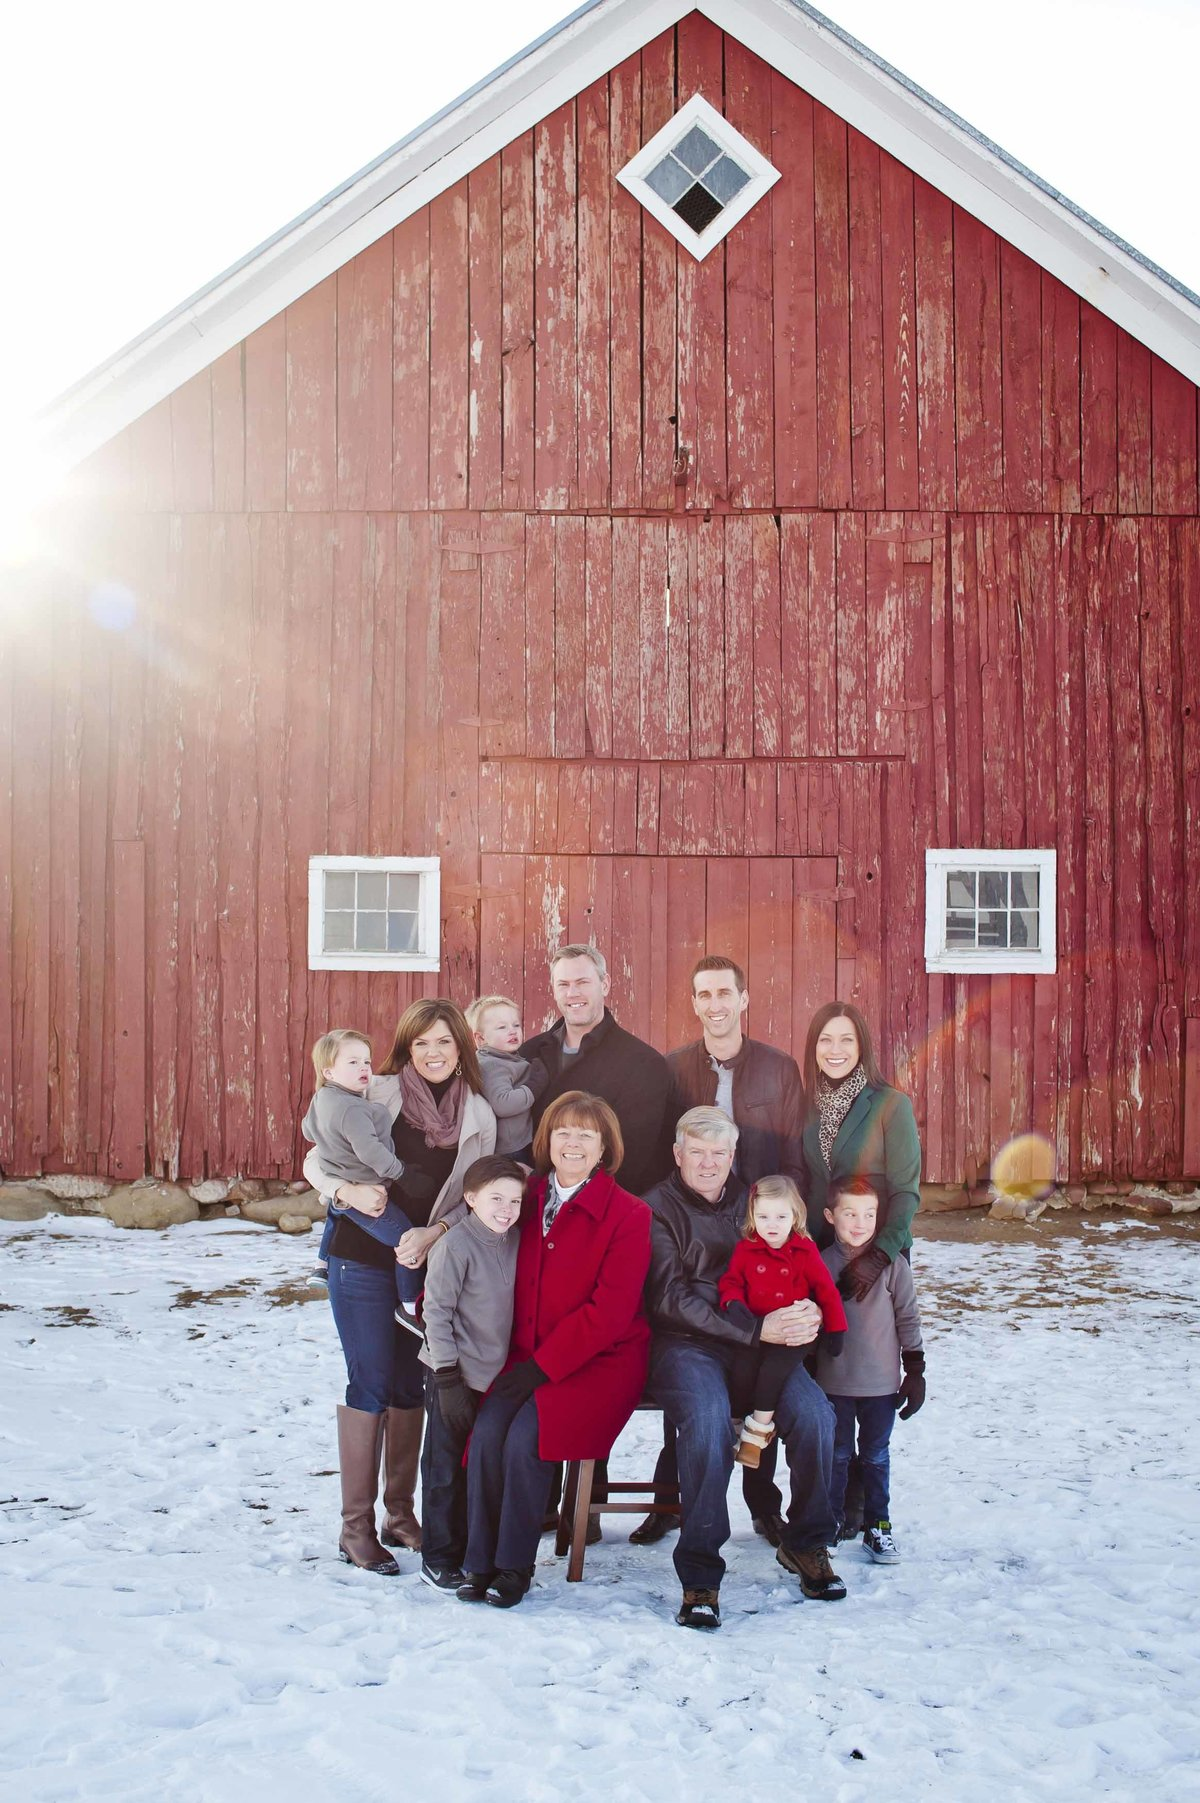 parker_co_Barn_family_photo013